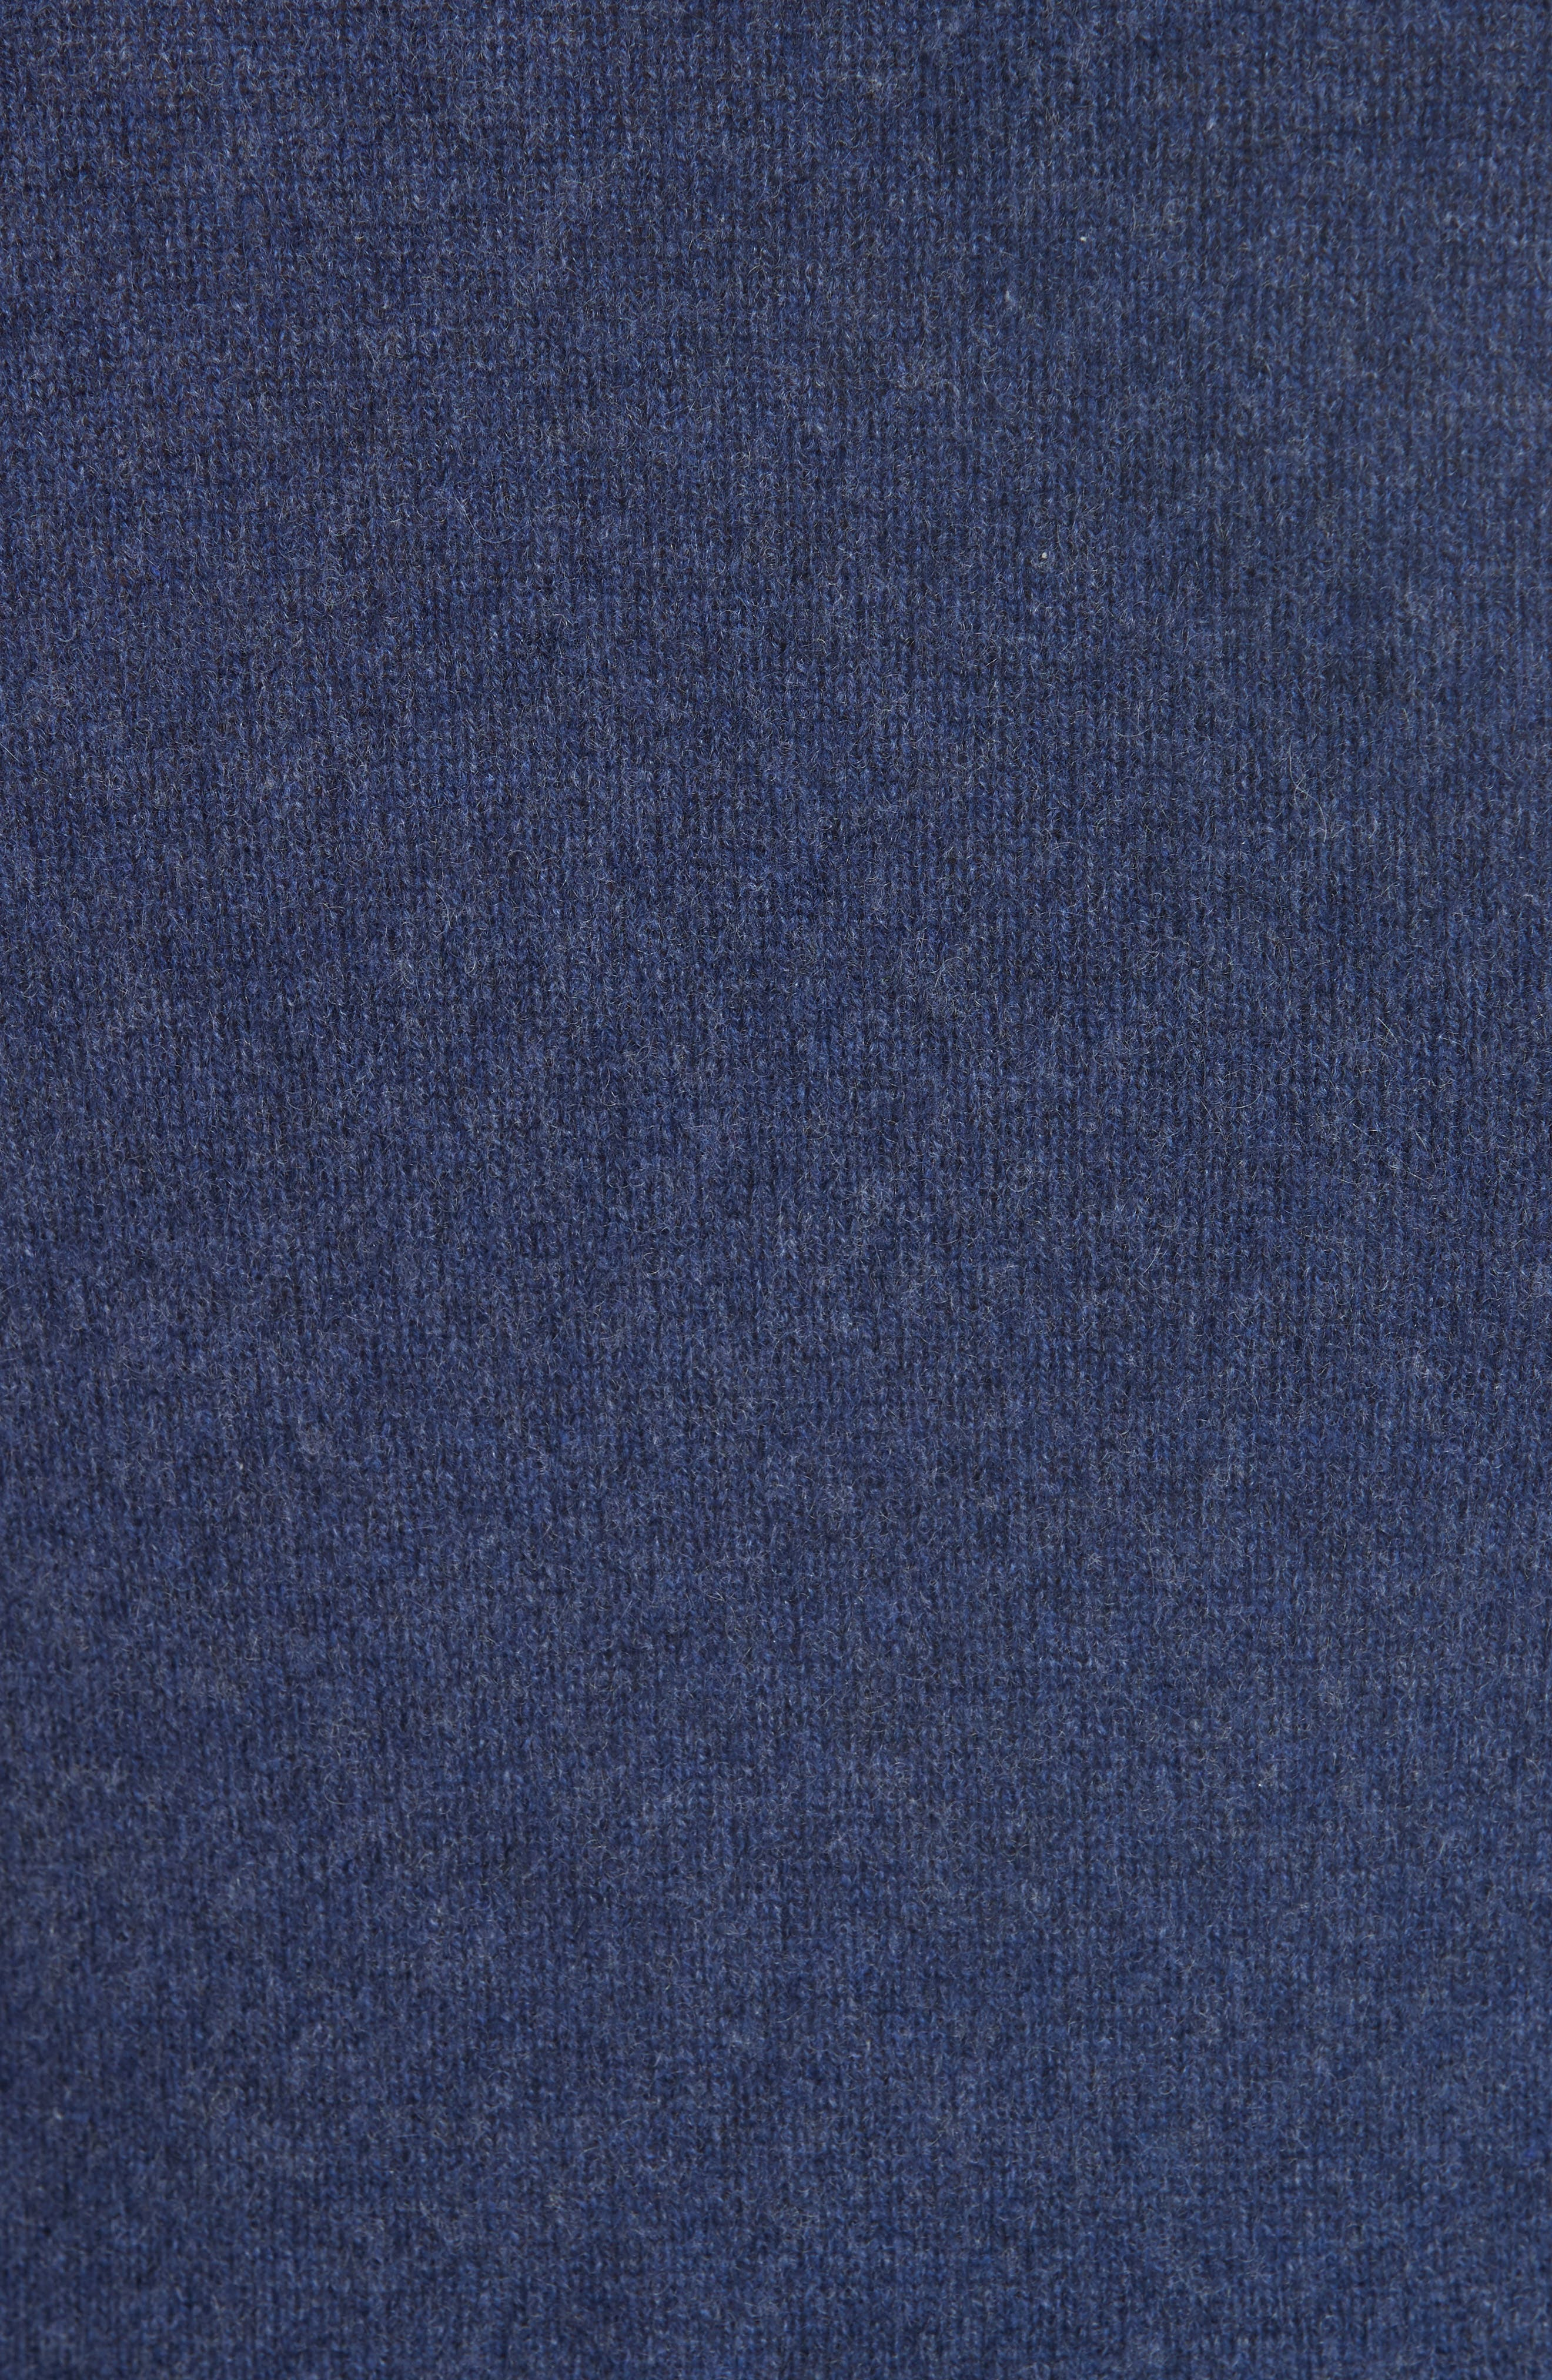 Cashmere Sweater,                             Alternate thumbnail 5, color,                             HEATHER NAVY